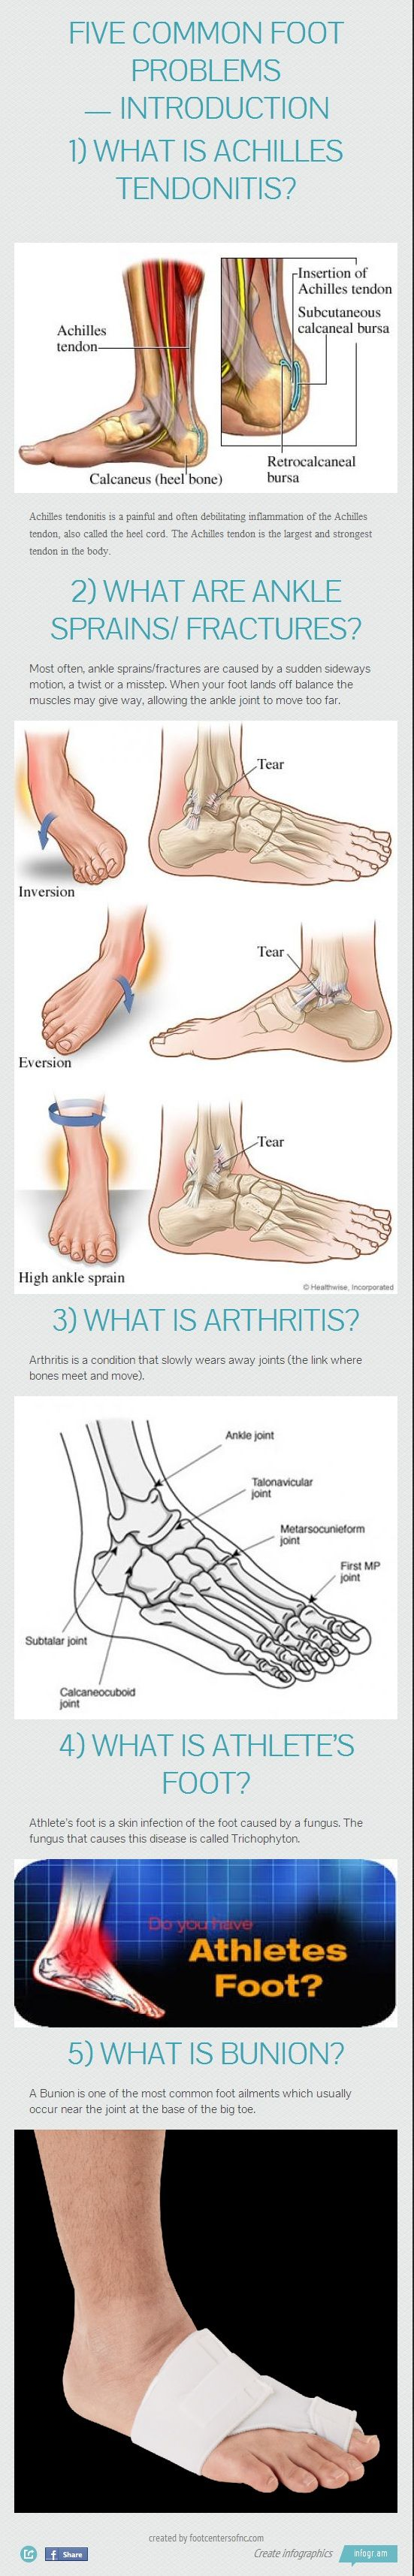 139 best Infographics images on Pinterest | Foot pain, Leg pain and ...